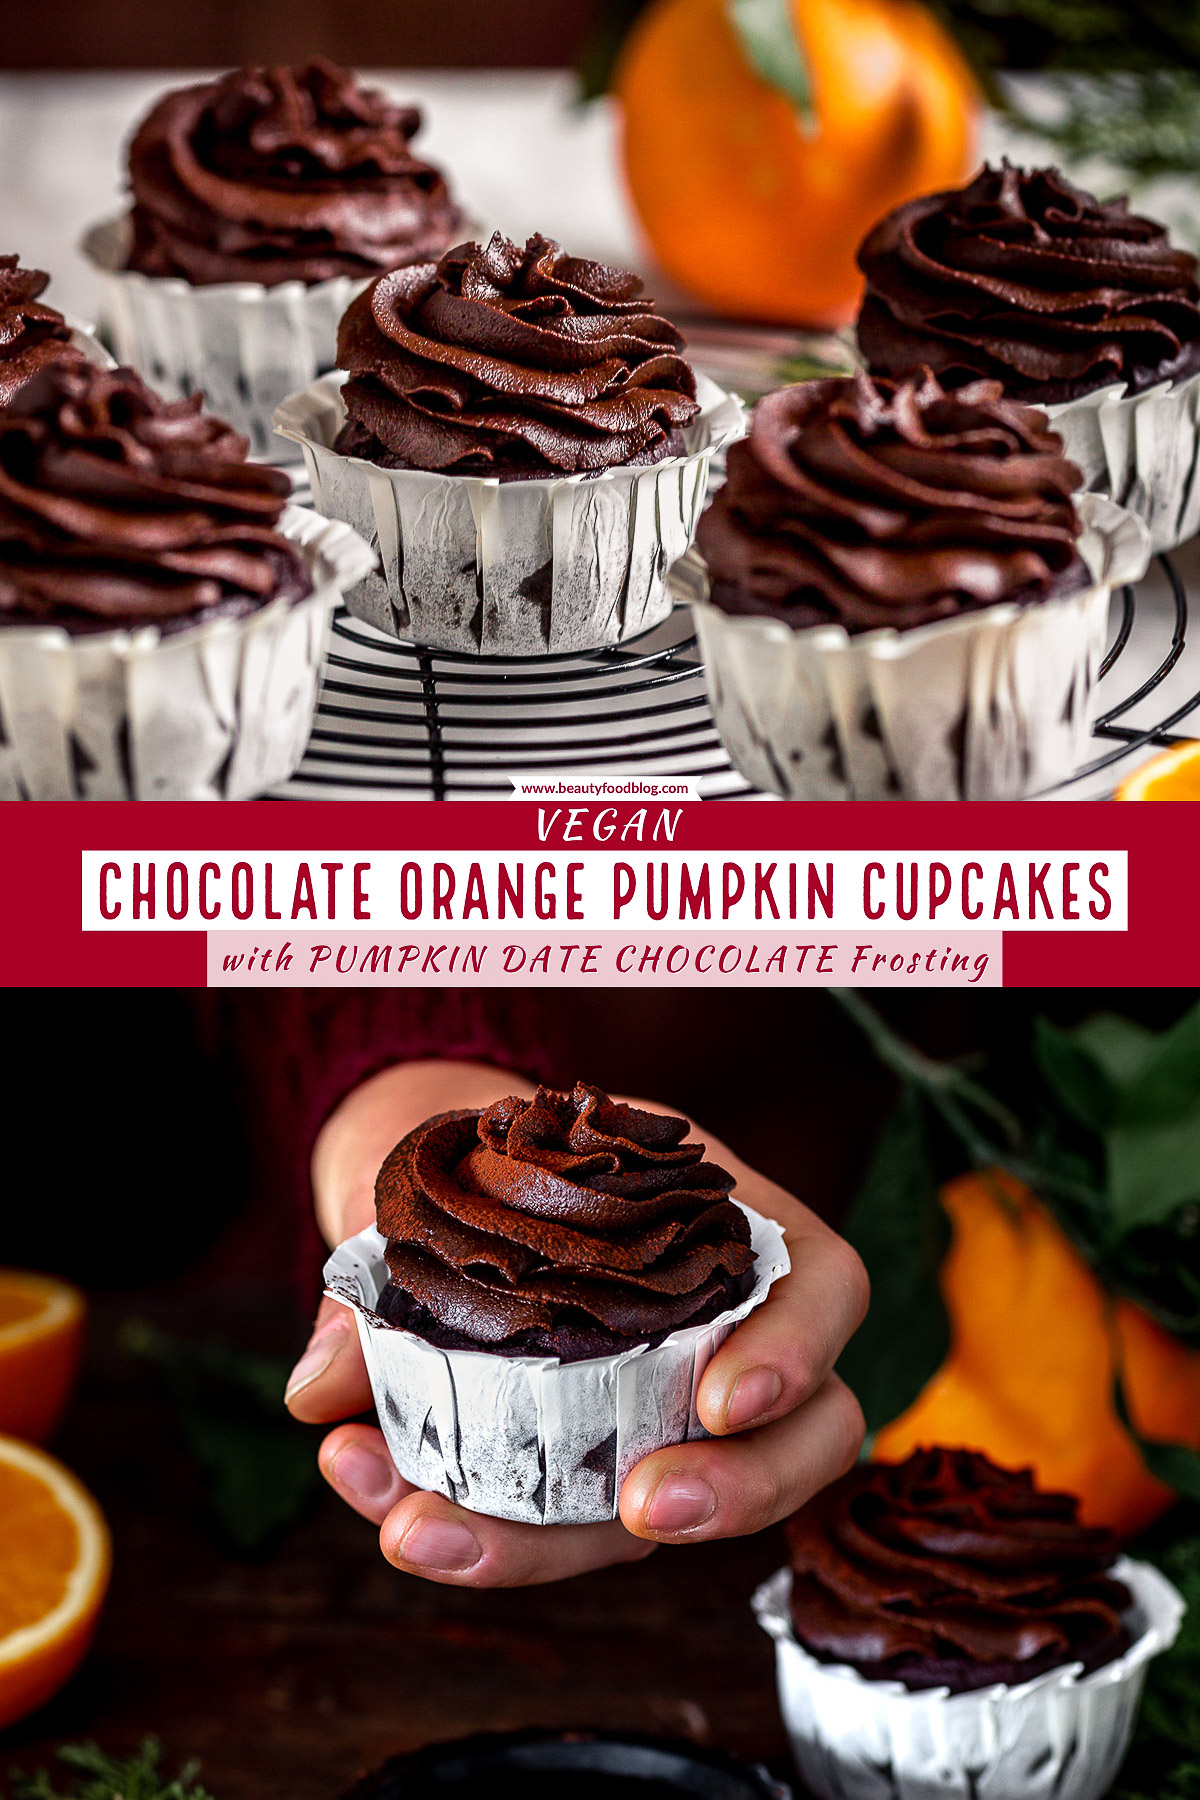 #VEGAN CHOCOLATE PUMPKIN CUPCAKES with orange and DATE #CHOCOLATE Frosting | #CUPCAKES VEGAN al CIOCCOLATO ARANCIA e ZUCCA con mousse al cioccolato datteri e zucca | www.beautyfoodblog.com